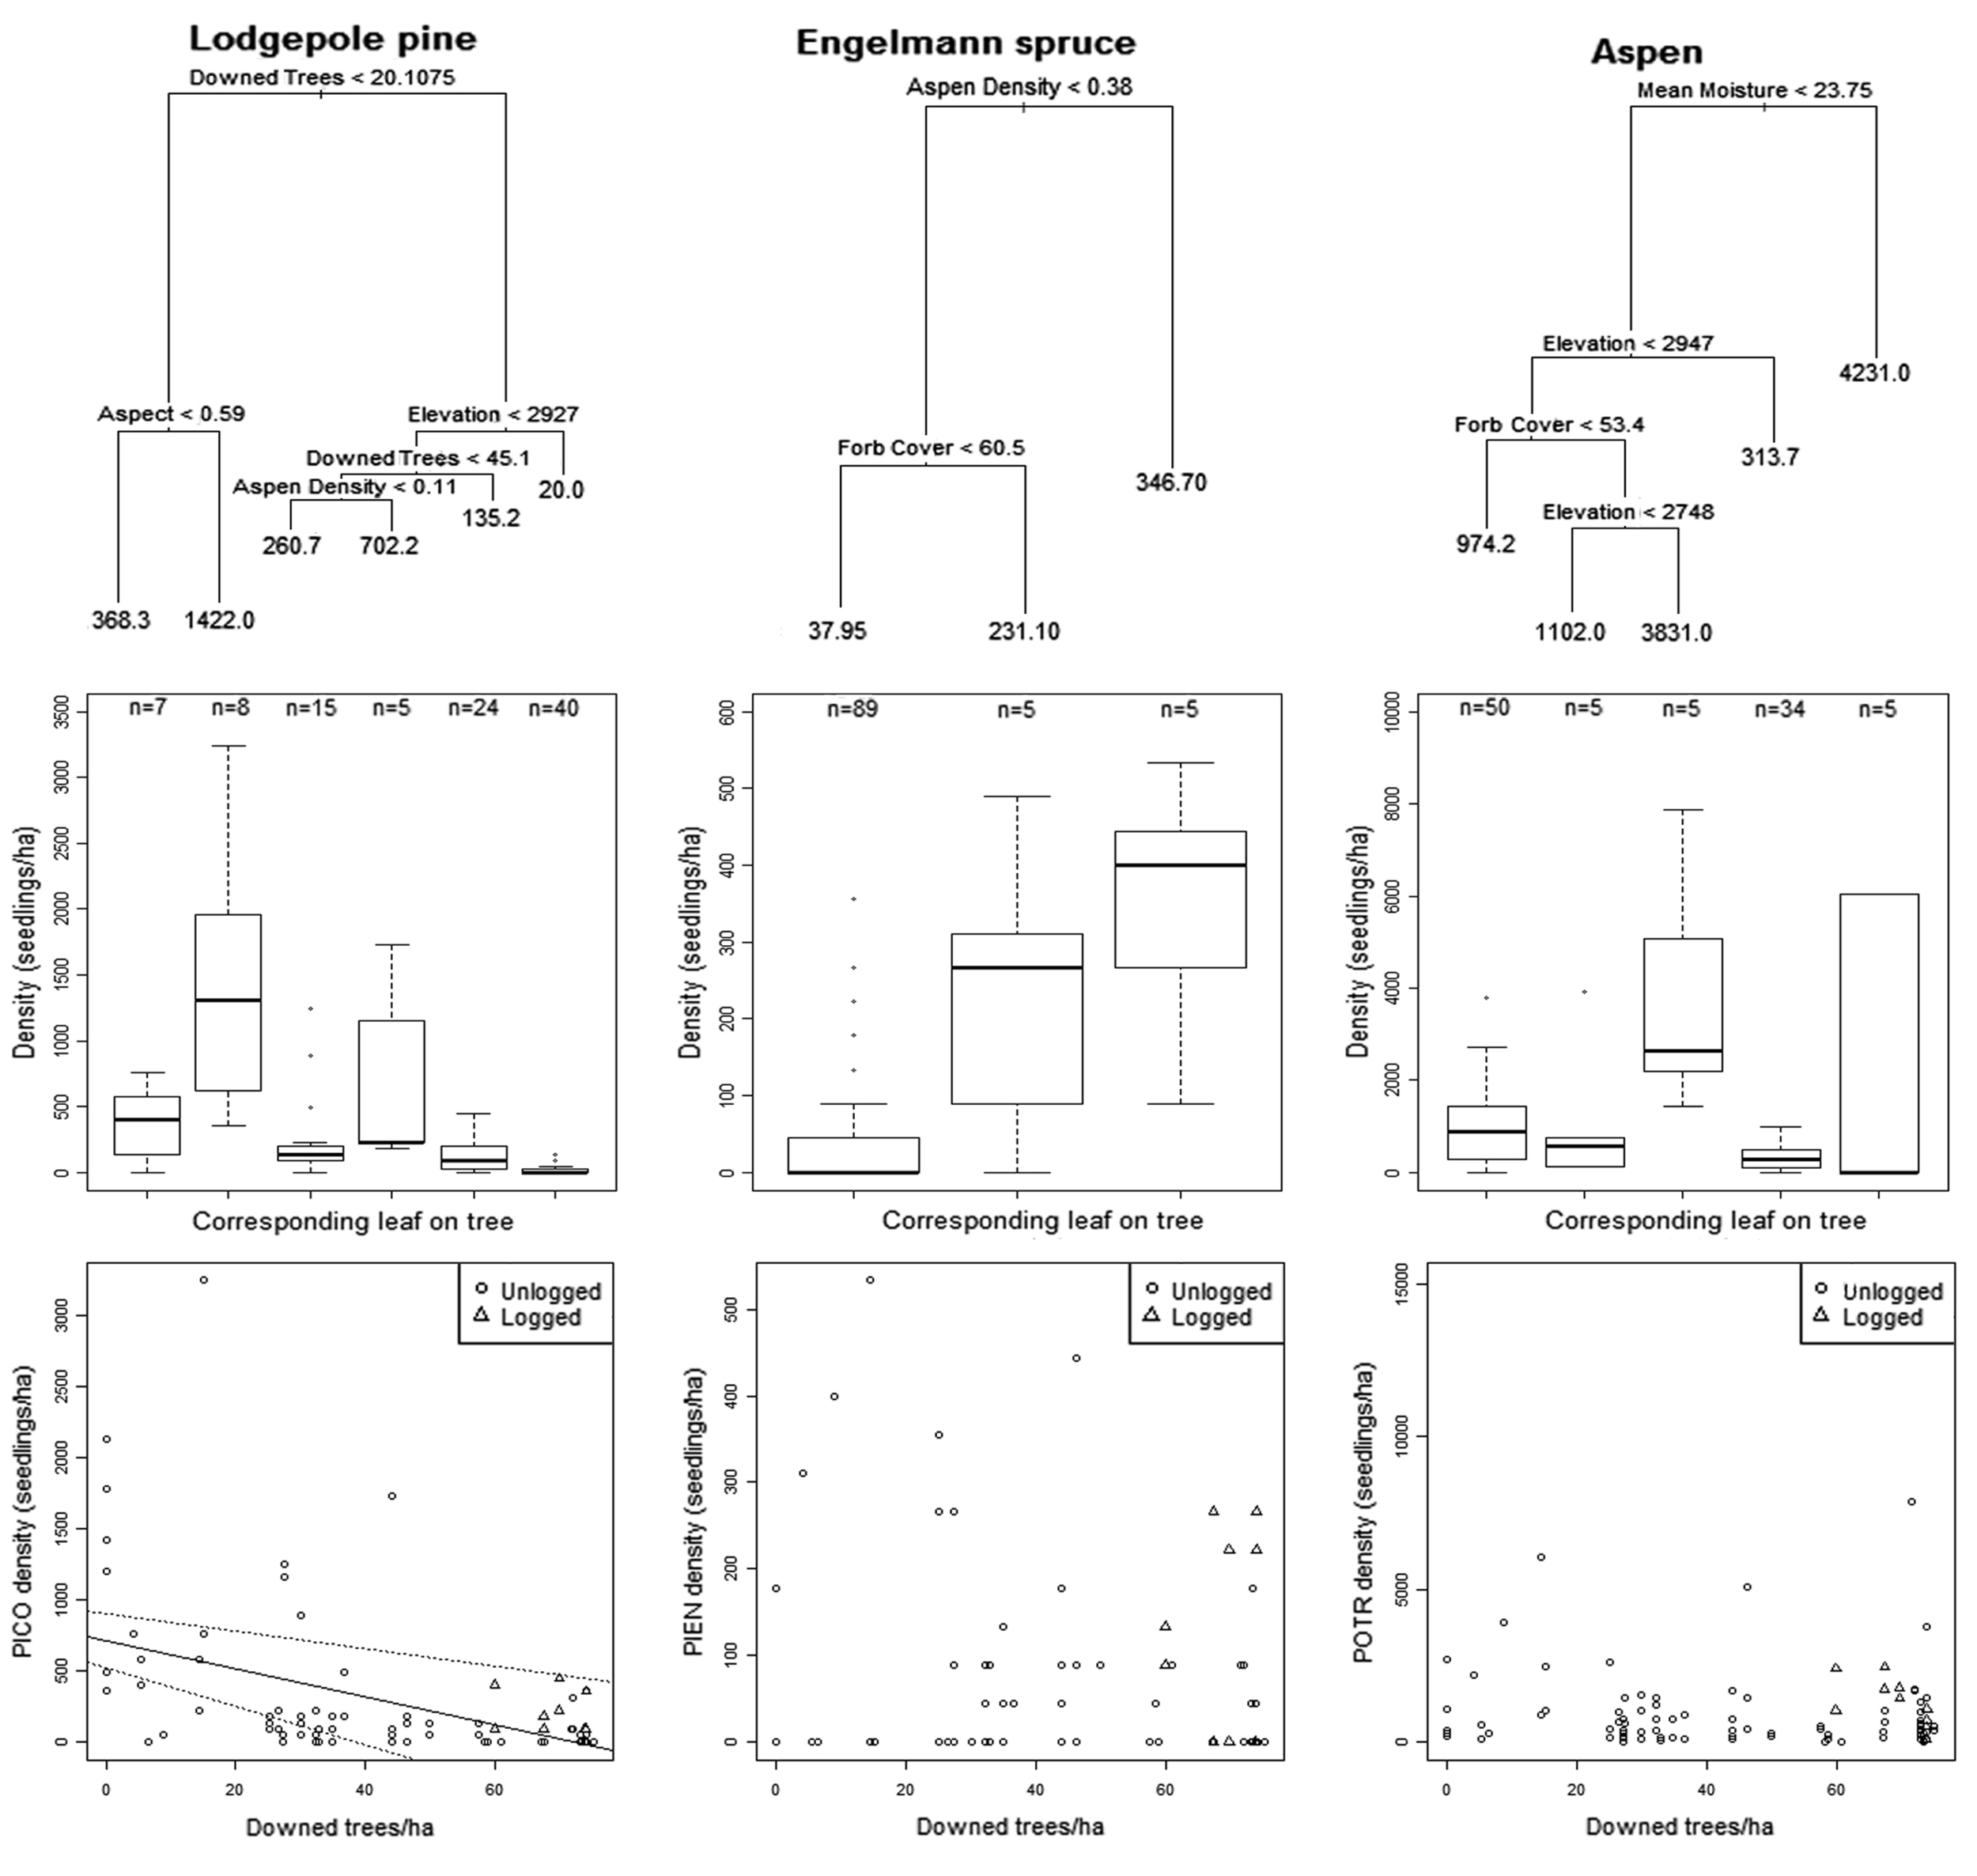 Random forest-based regression trees and non-parametric regressions of post-fire seedling densities across a variety of disturbance interaction histories and intensities. From  Buma and Wessman (2012) .